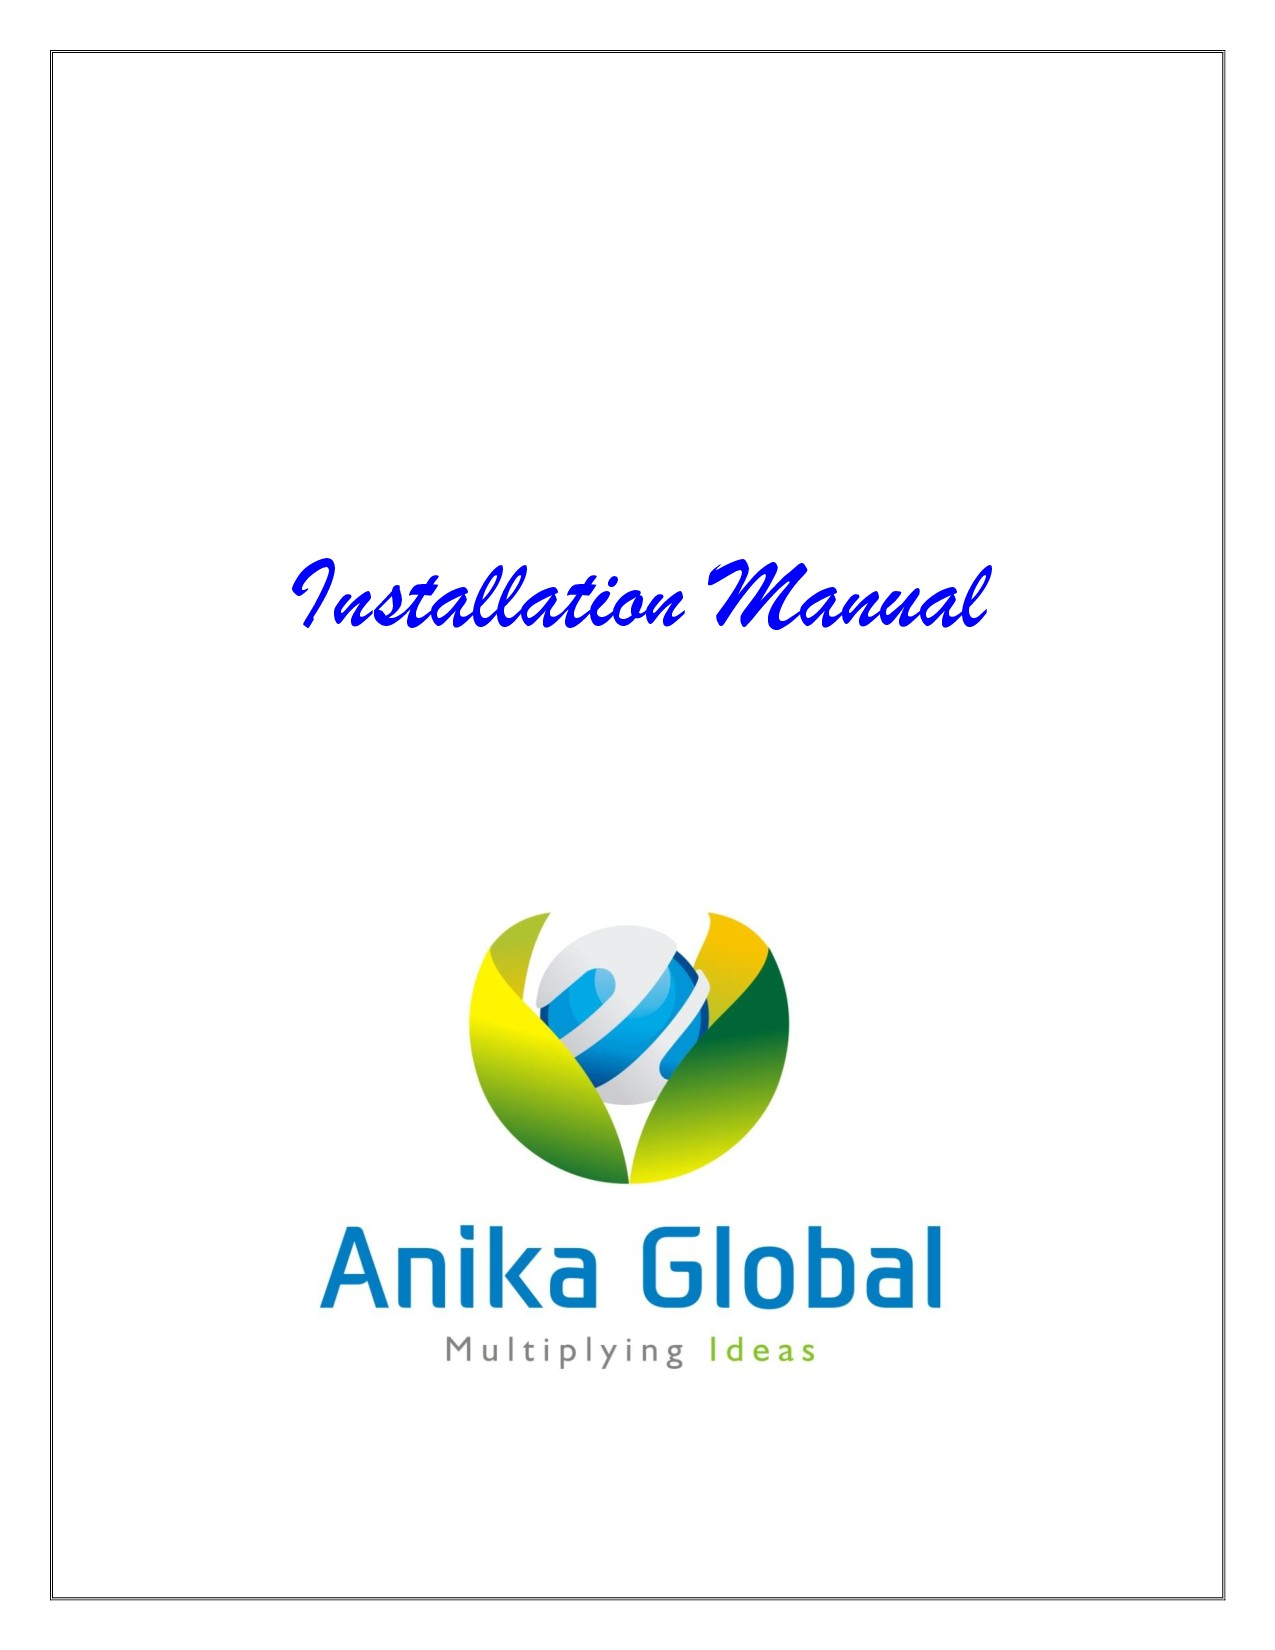 Anika Global Products Catalogue